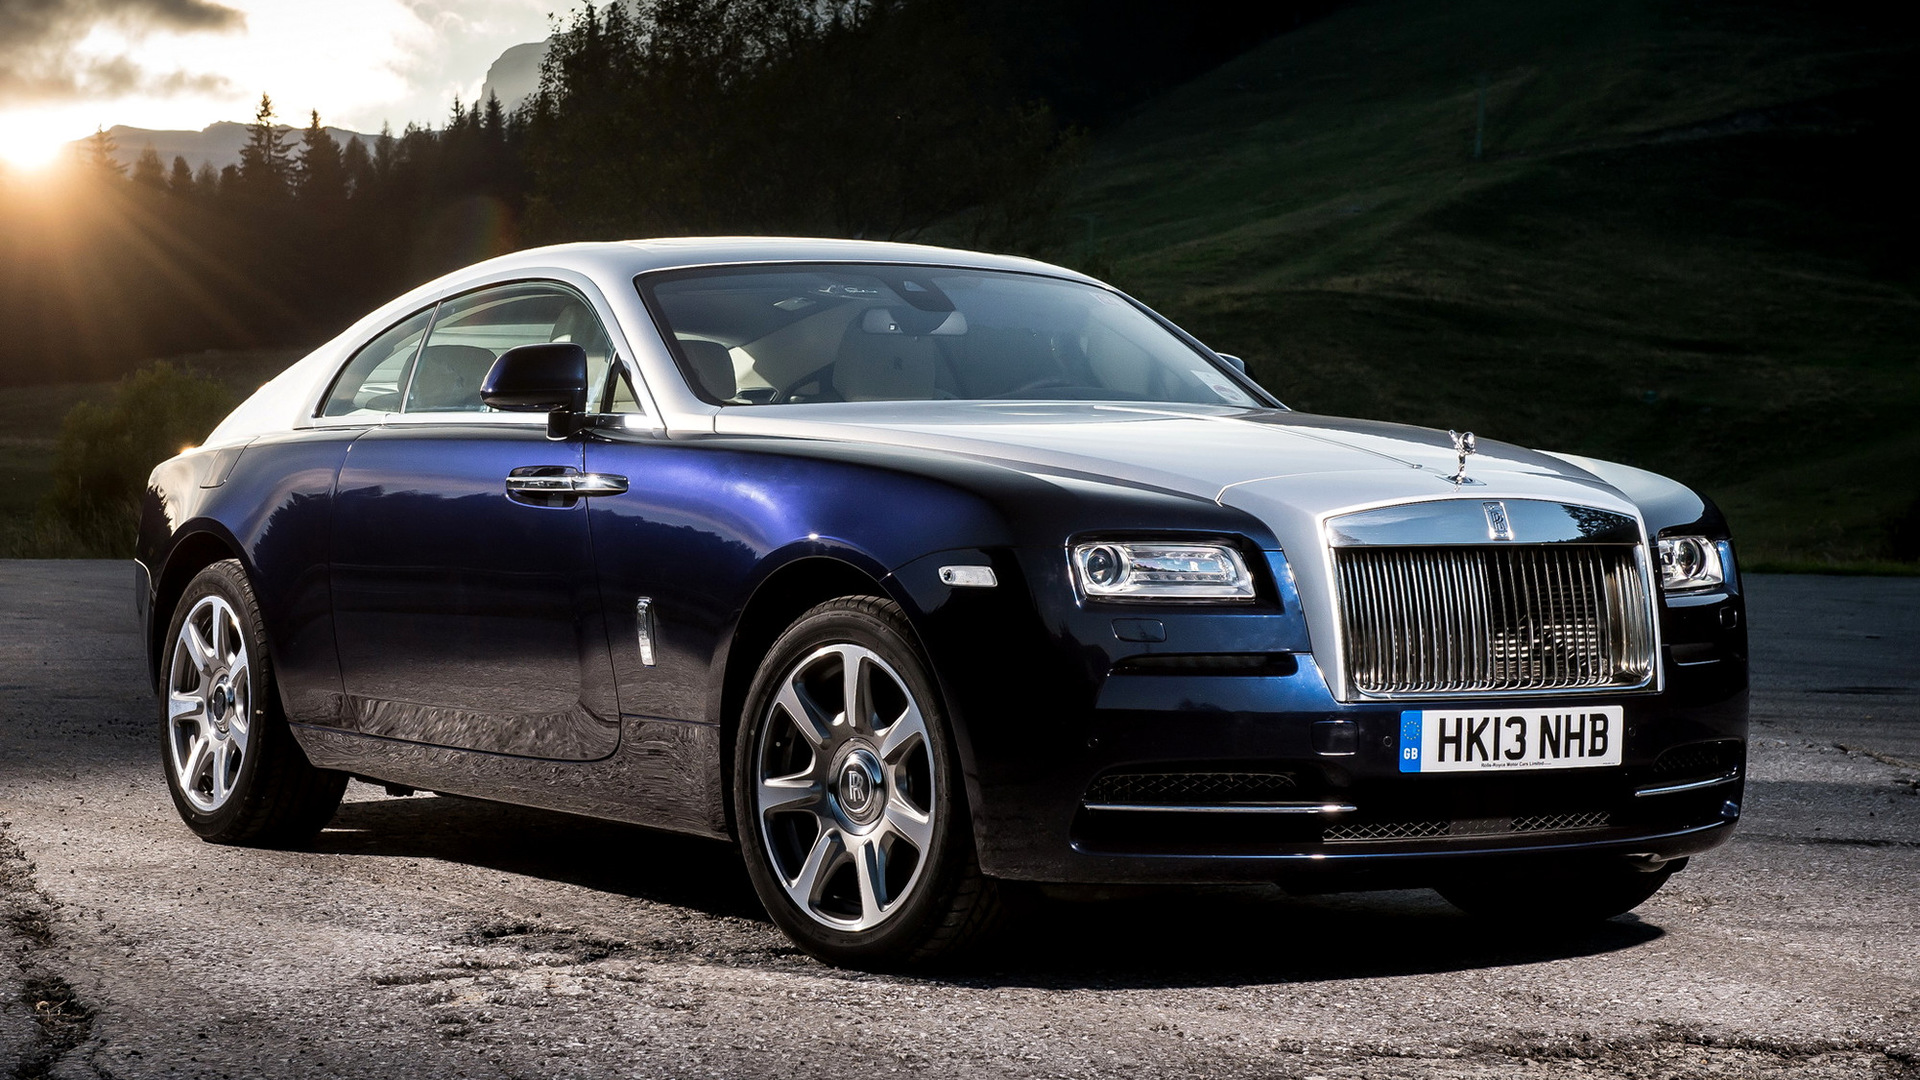 Rolls Royce Wraith 2013 Wallpapers And HD Images